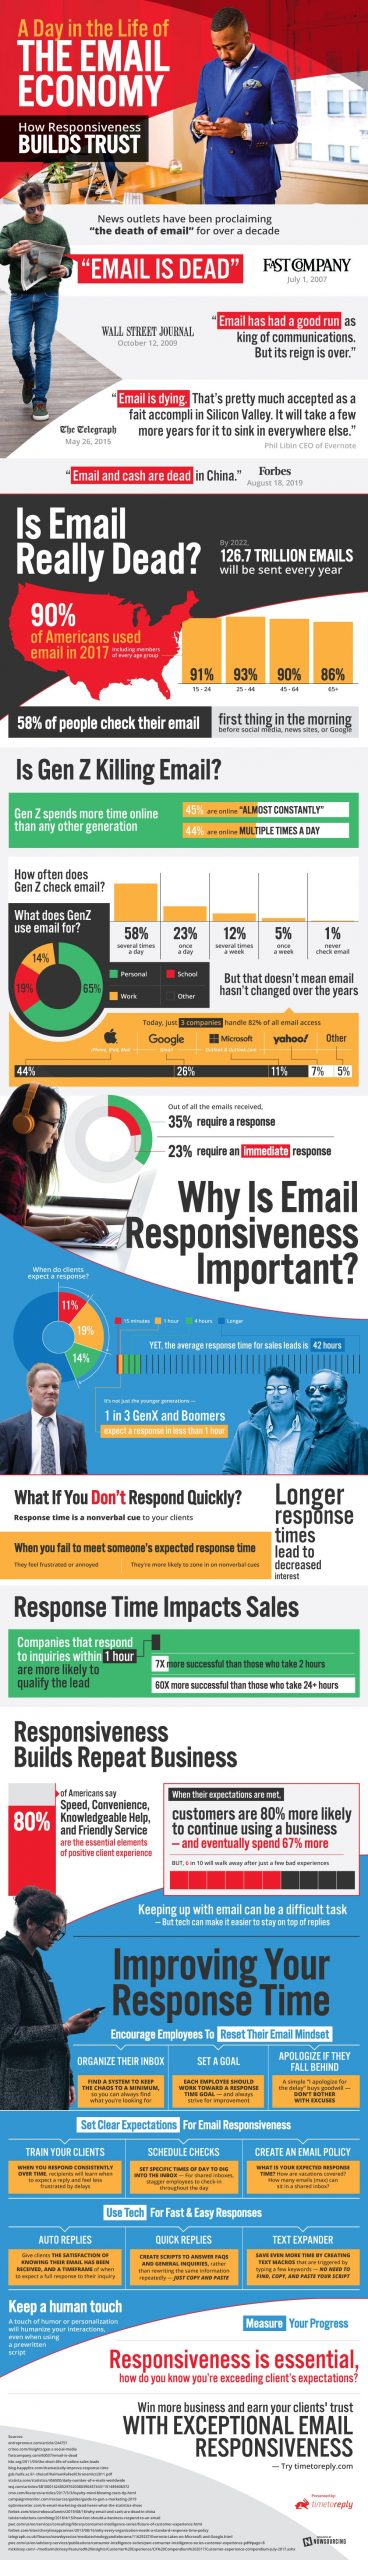 Ignore Email at Your Own Peril [Infographic]